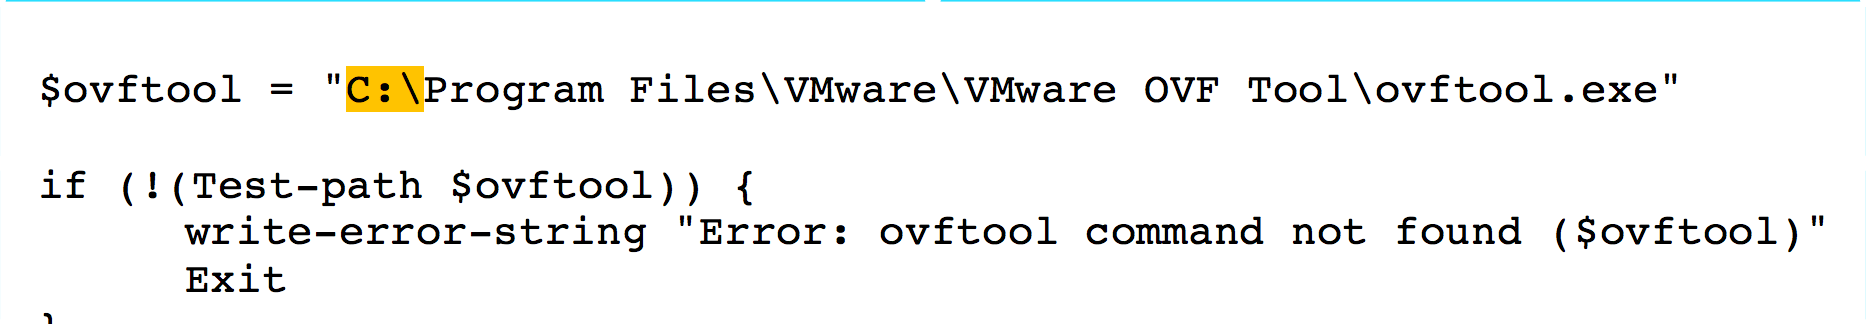 Deploying VMware Access Point with PowerShell - robbeekmans net